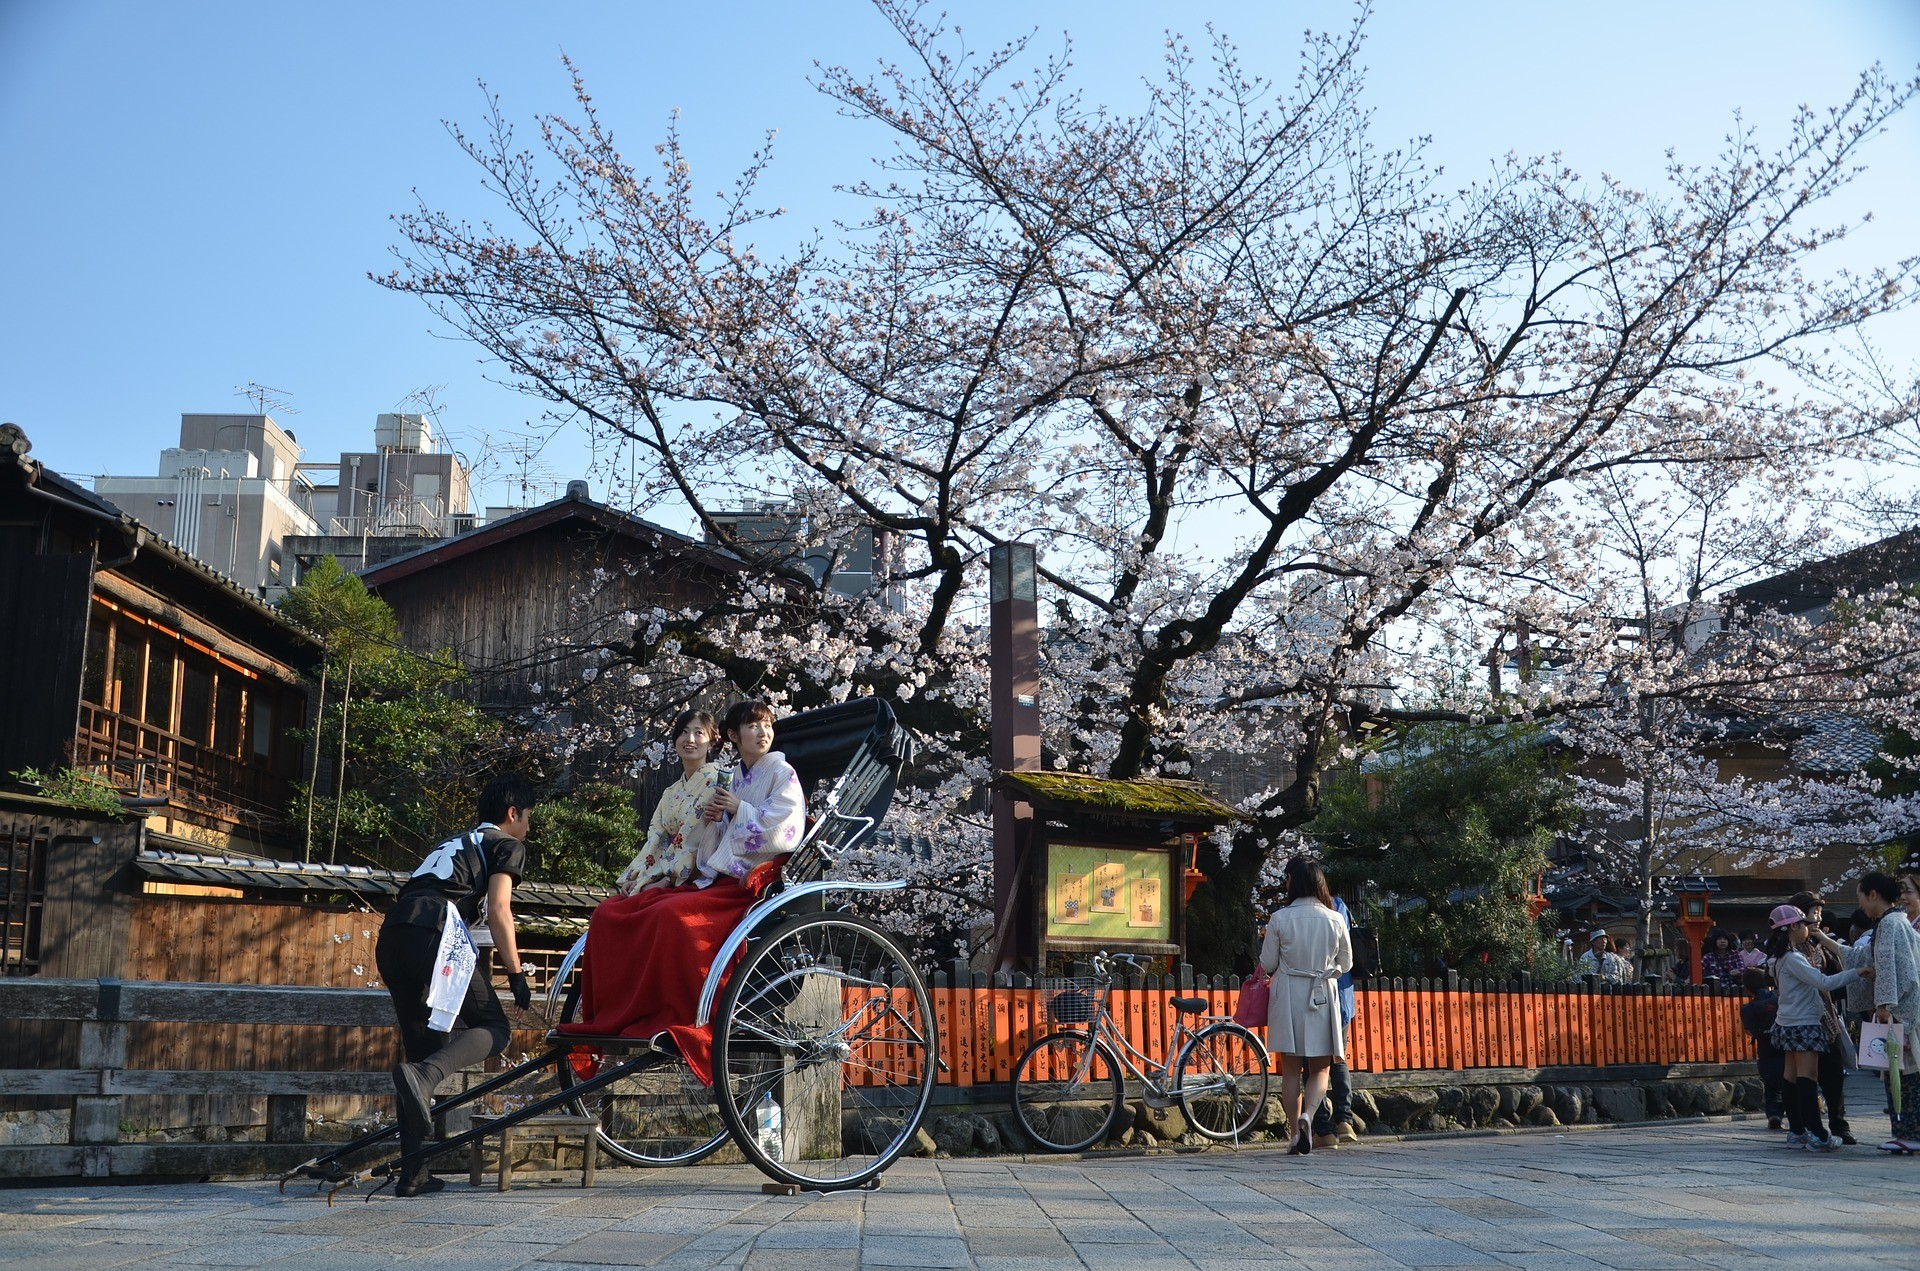 KYOTO AND THE CHERRY BLOSSOM SEASON